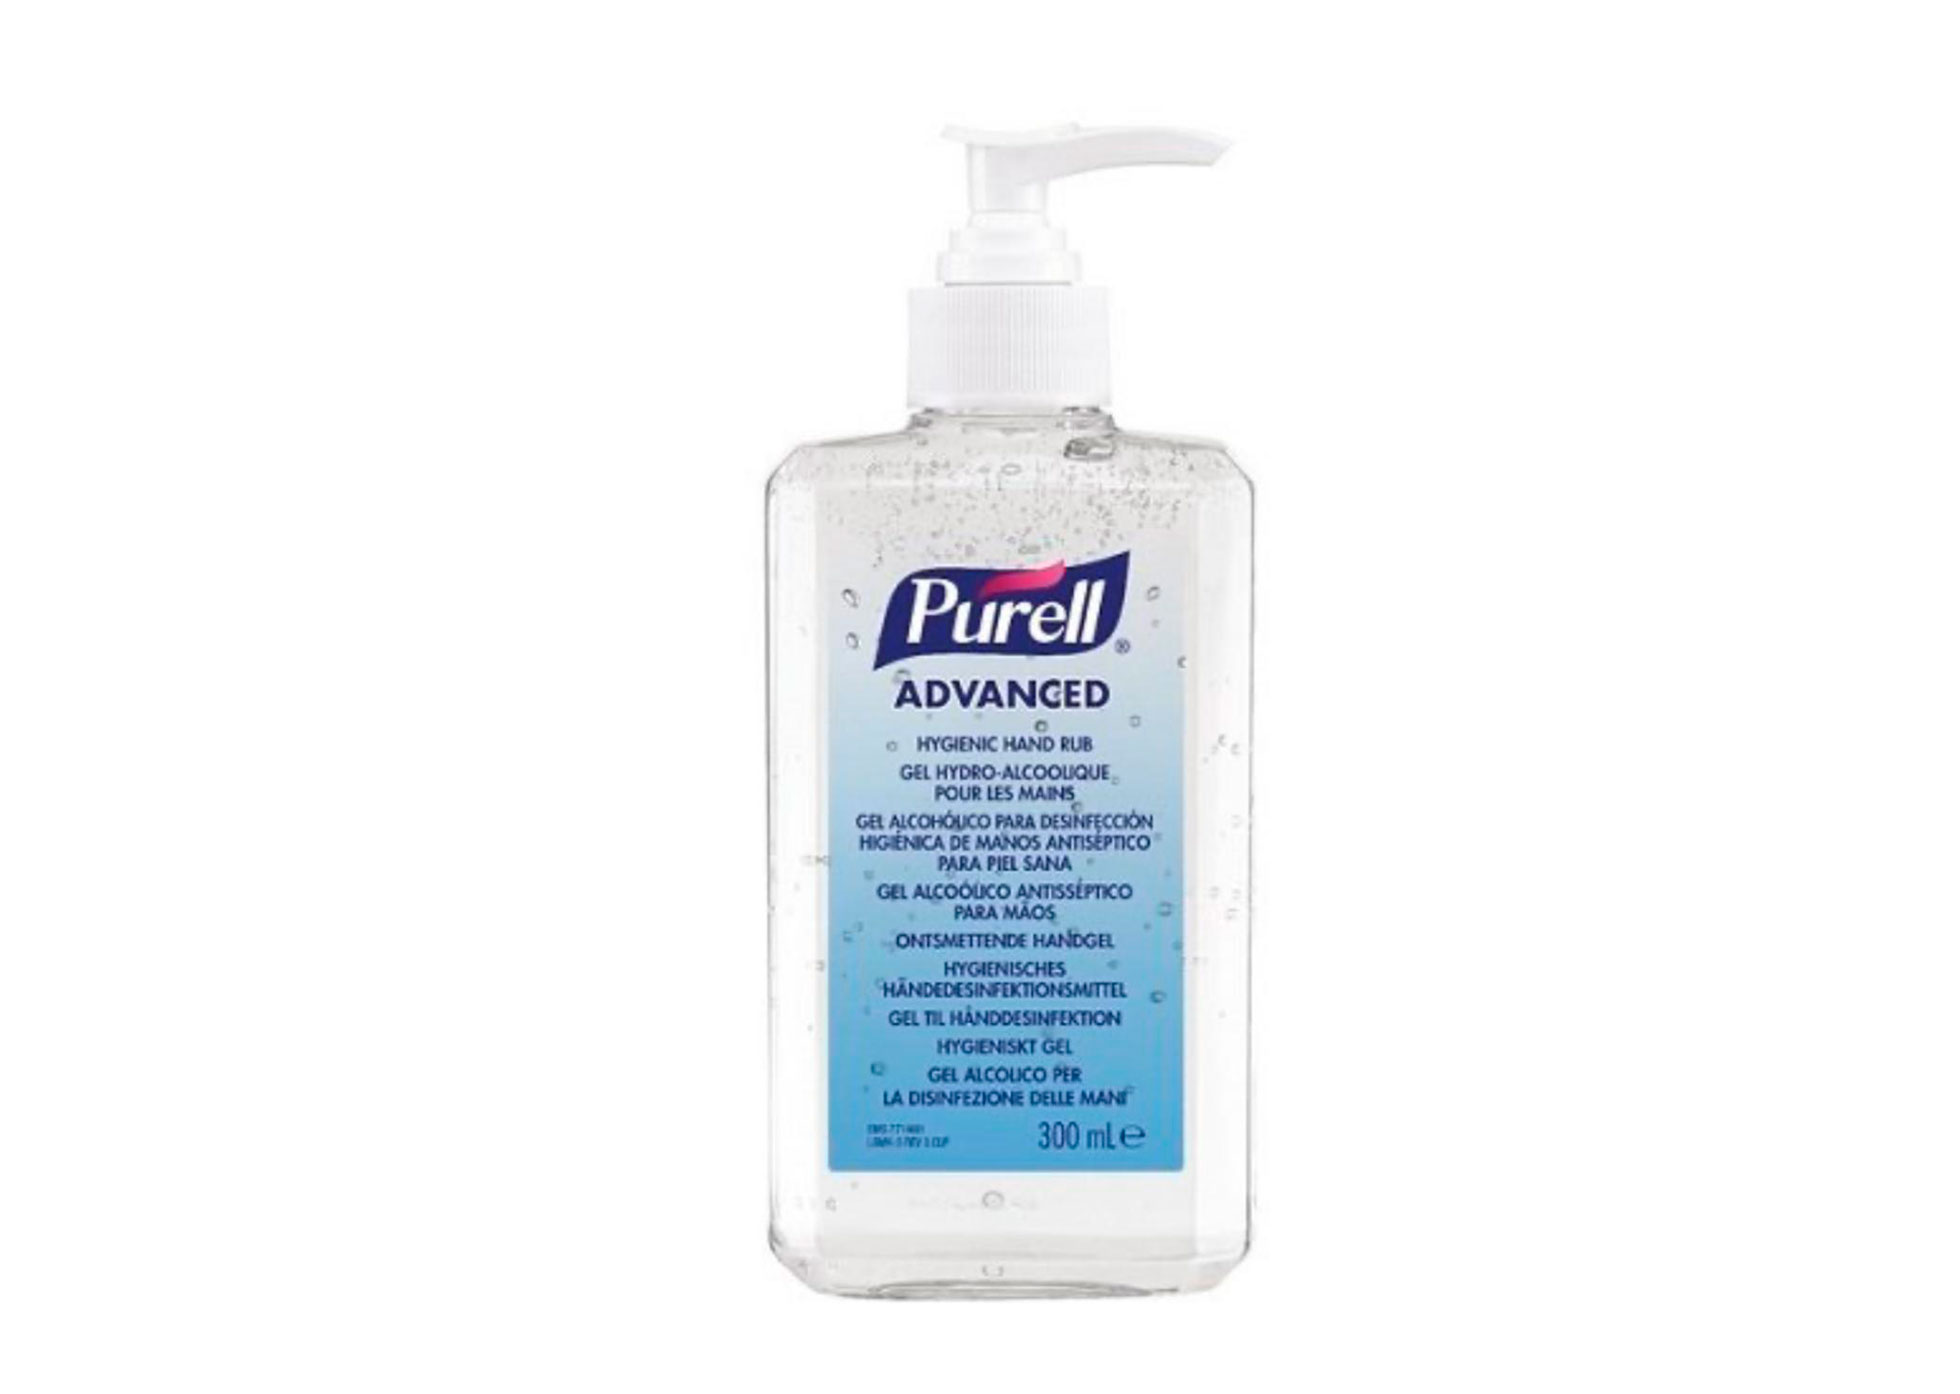 Purell Advanced Hand Sanitisers